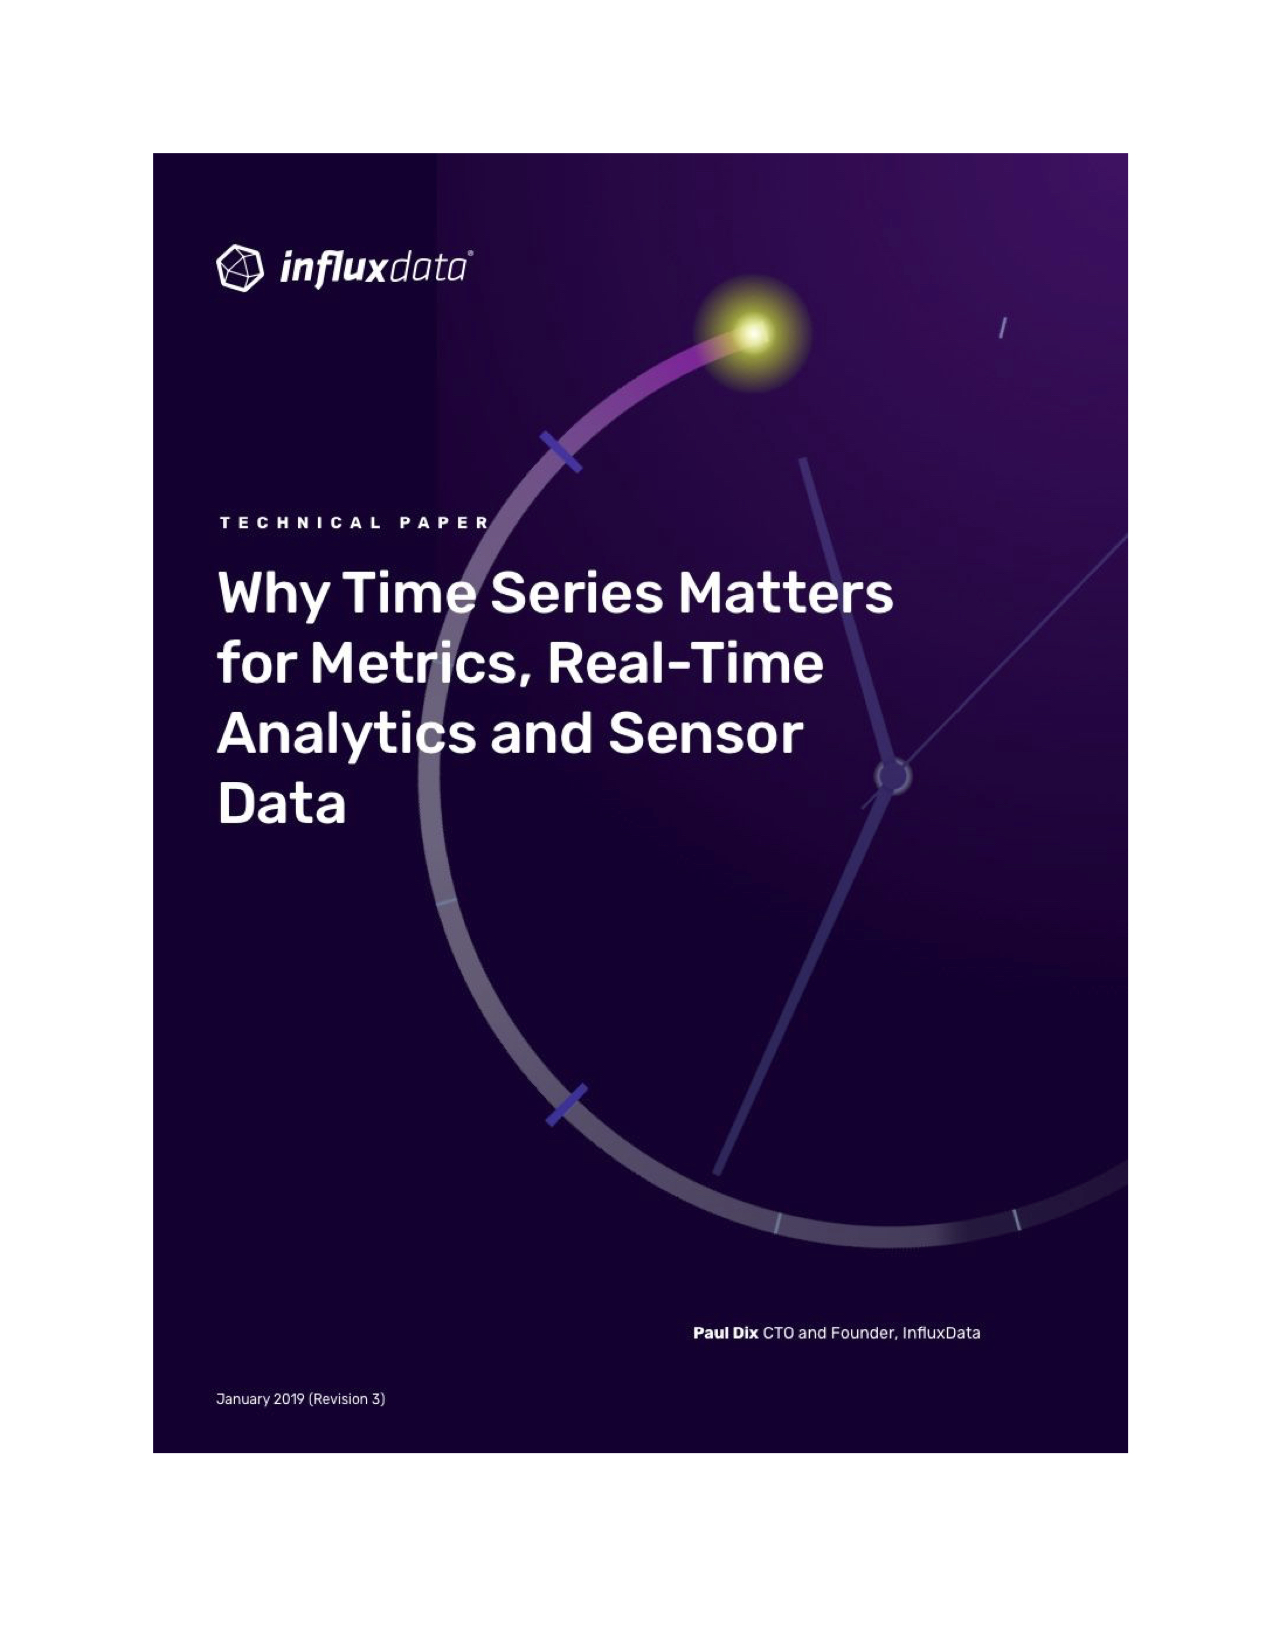 Why Time Series Matters for Metrics, Real-Time Analytics and Sensor Data_cover